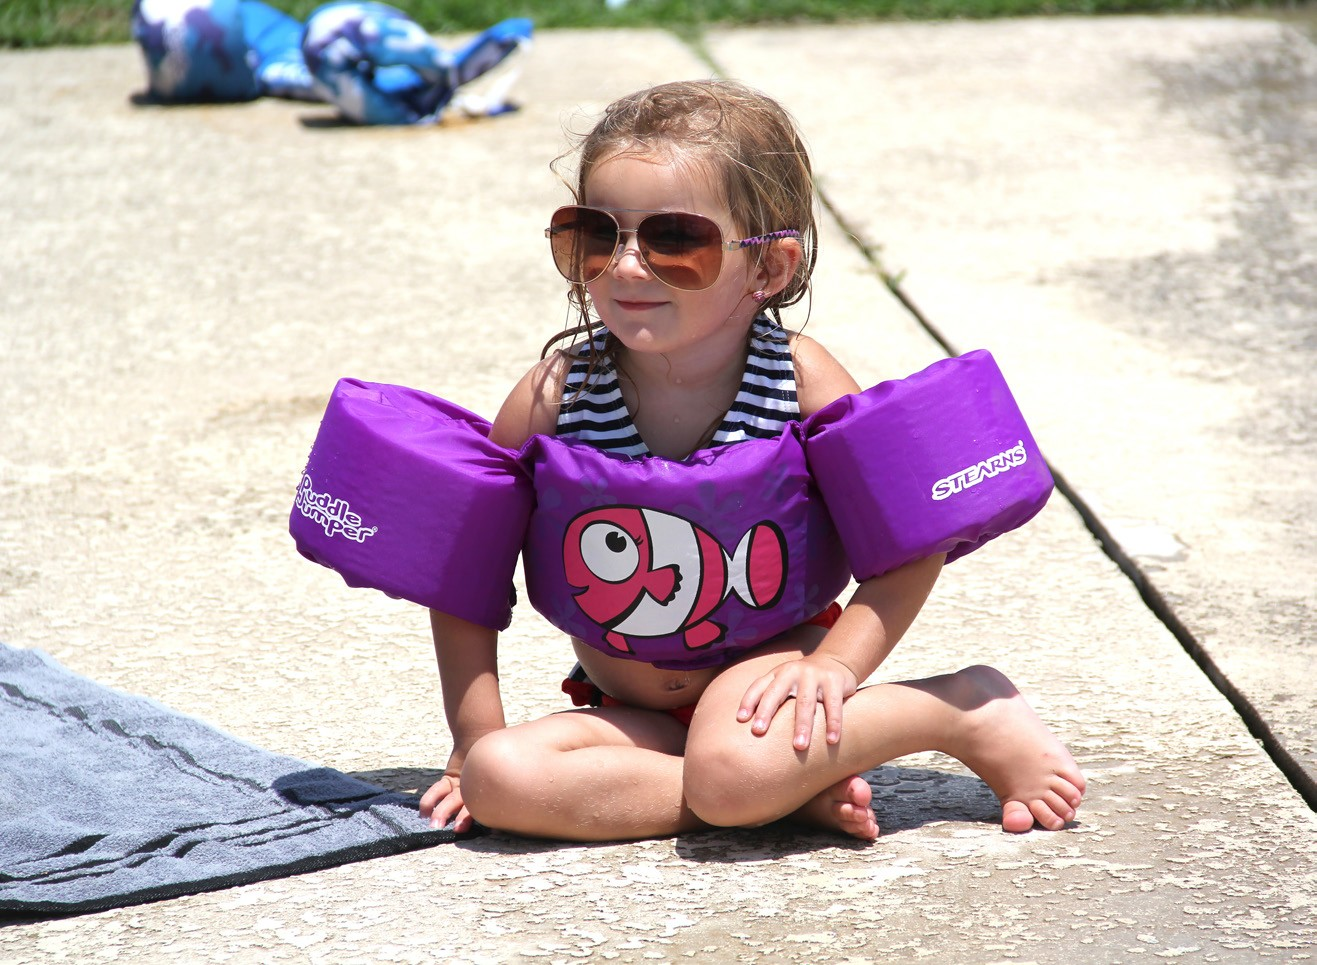 Kadi Wilson (left), eight, jumps in the Pleasanton Pool to kick off her summer while two year old Khloe Roberts (above) sports her big sunglasses while soaking up the delicious sun. The Pleasanton Pool officially opened on Tuesday, June 7 for all to enjoy.